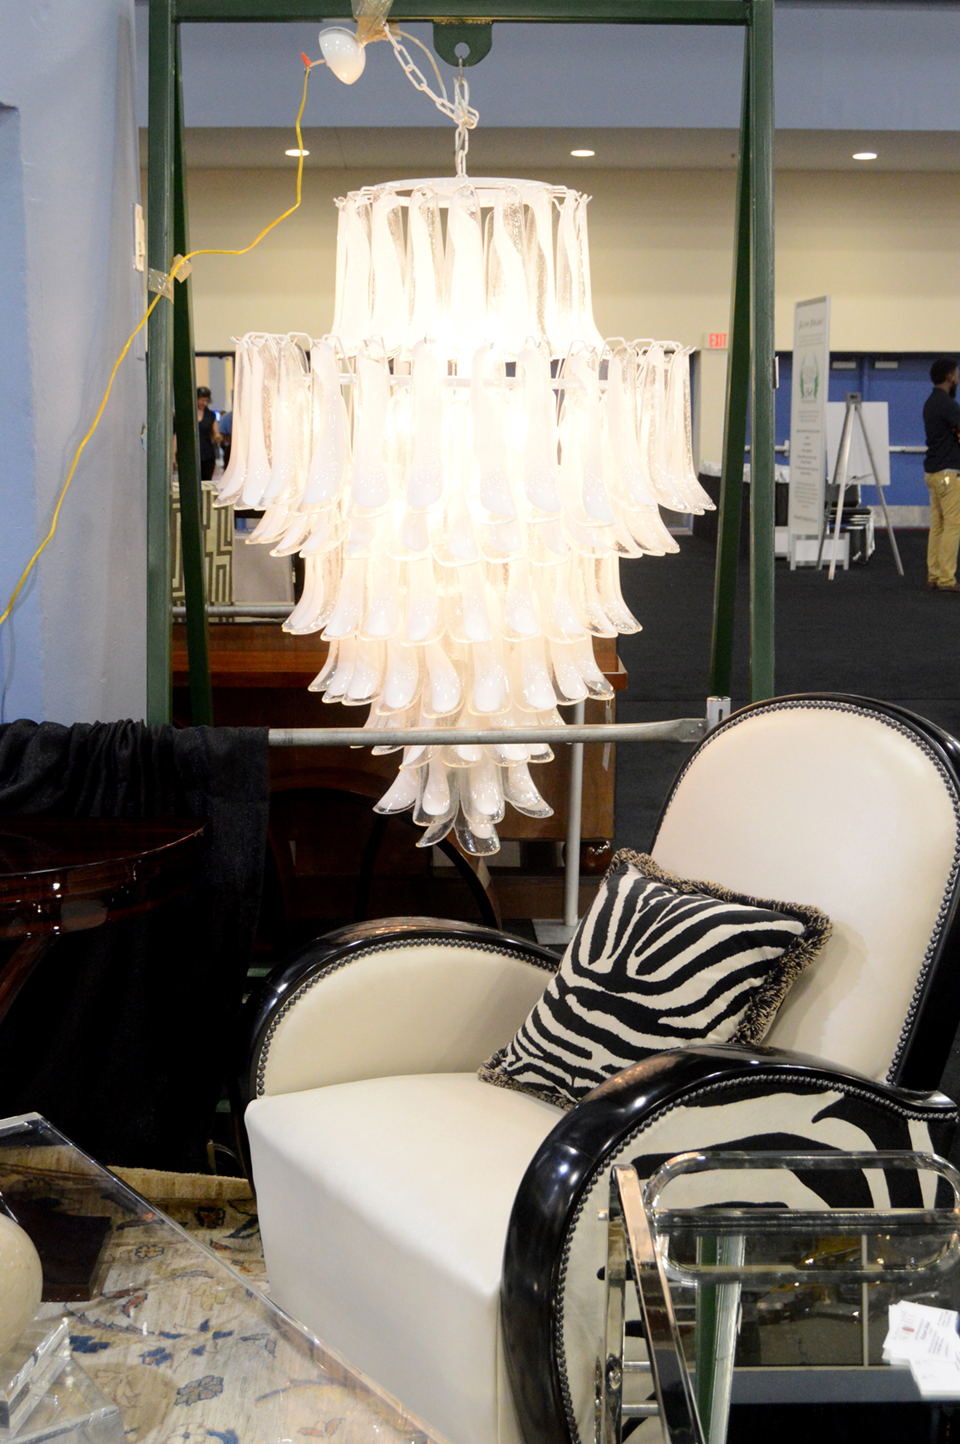 This Murano chandelier vied for attention with a pair of zebra club chairs<br>in the booth of Robert E. Alker Art Deco, Houston, Texas.